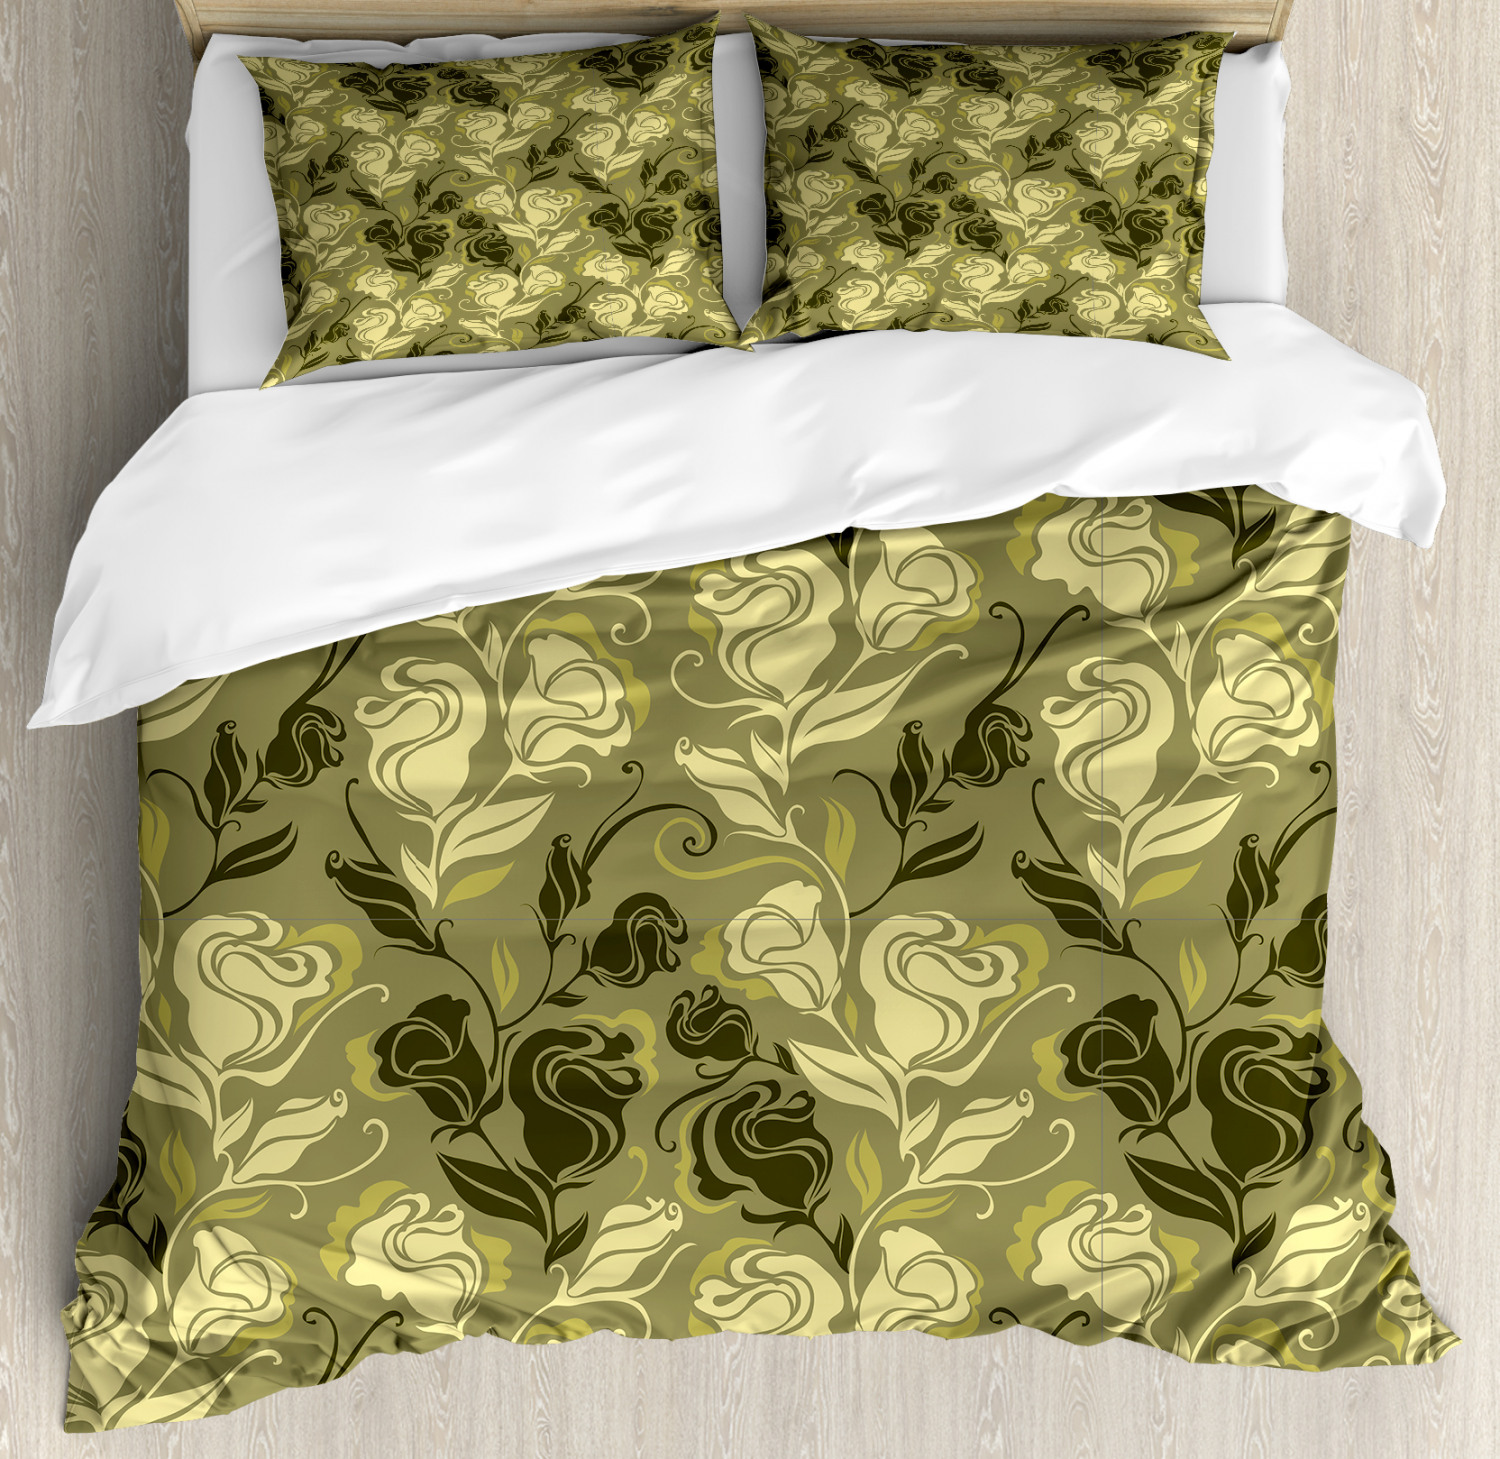 Grunge Duvet Cover Set with Pillow Shams Abstract Foliage pinks Print